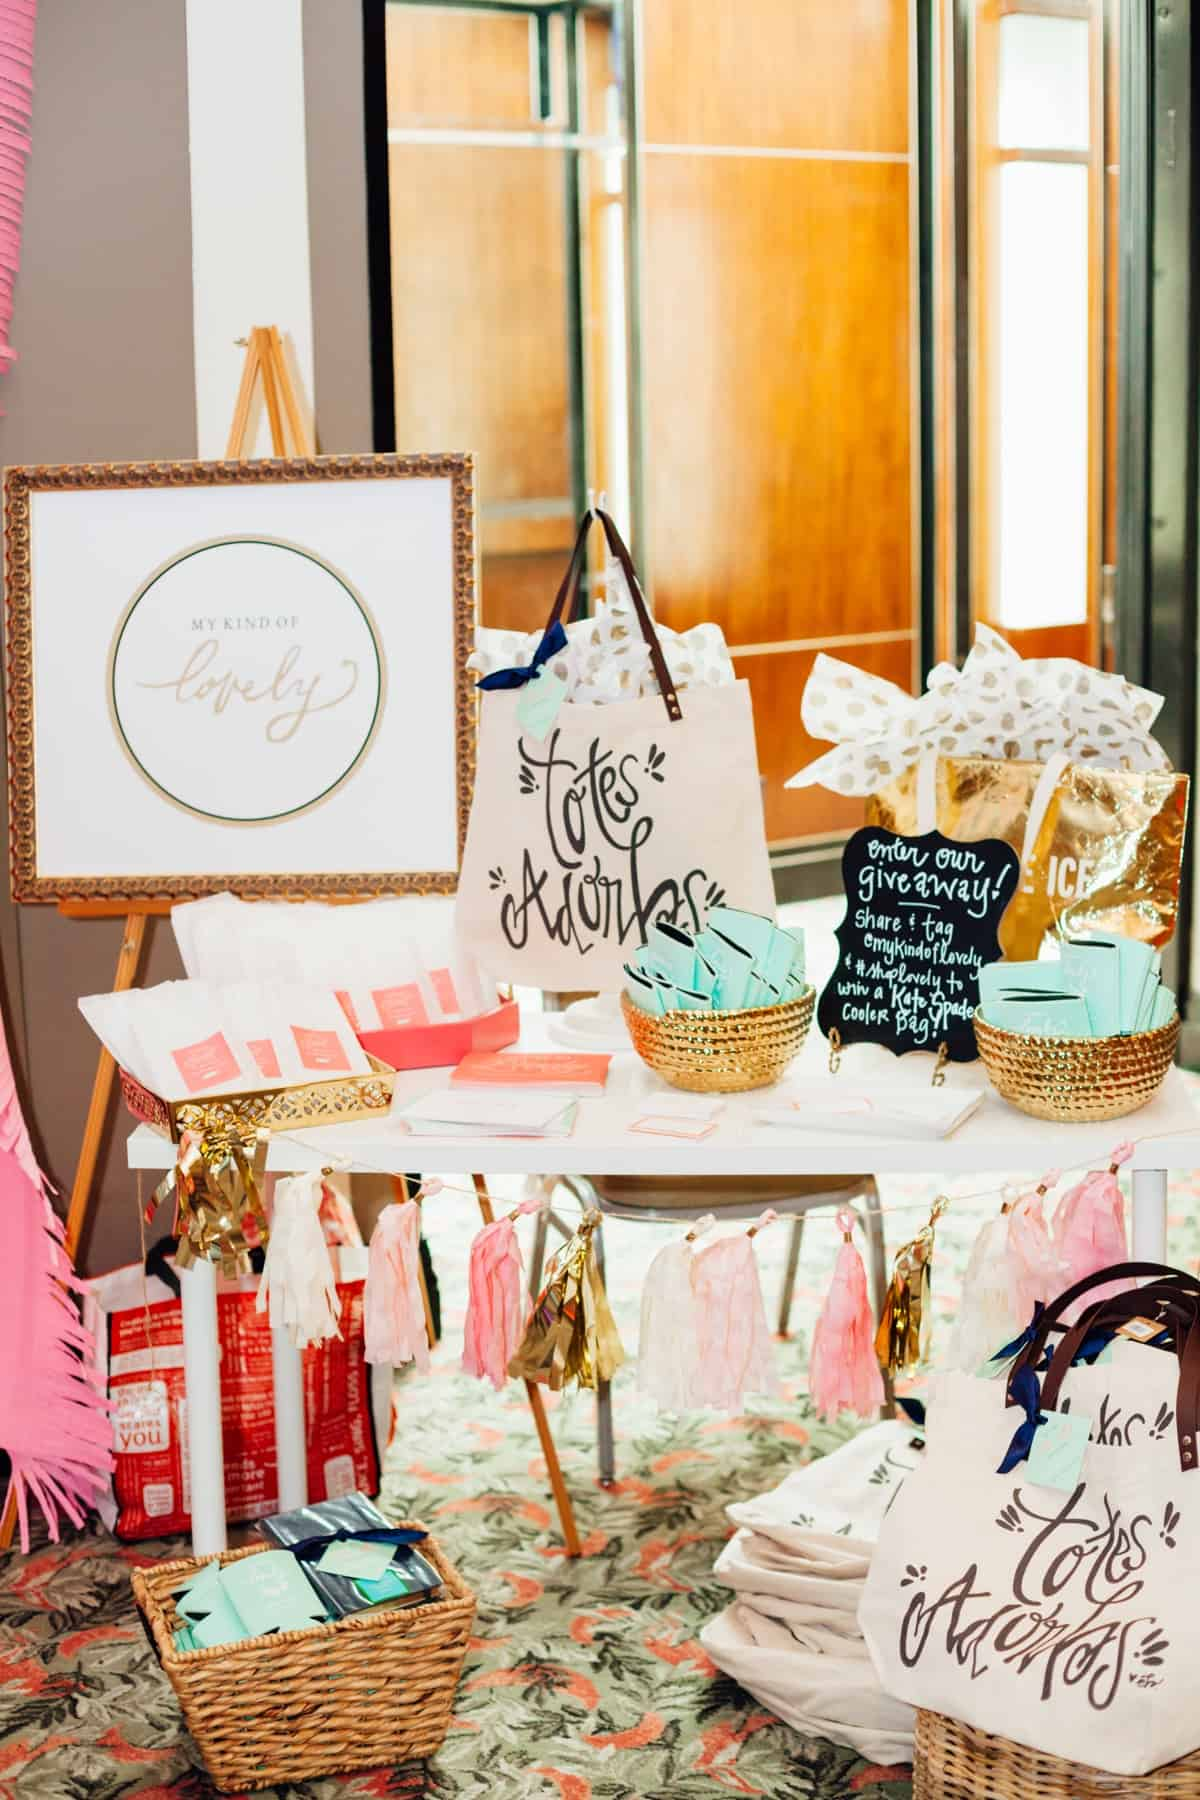 third annual southern blog society conference via @mystylevita - 10